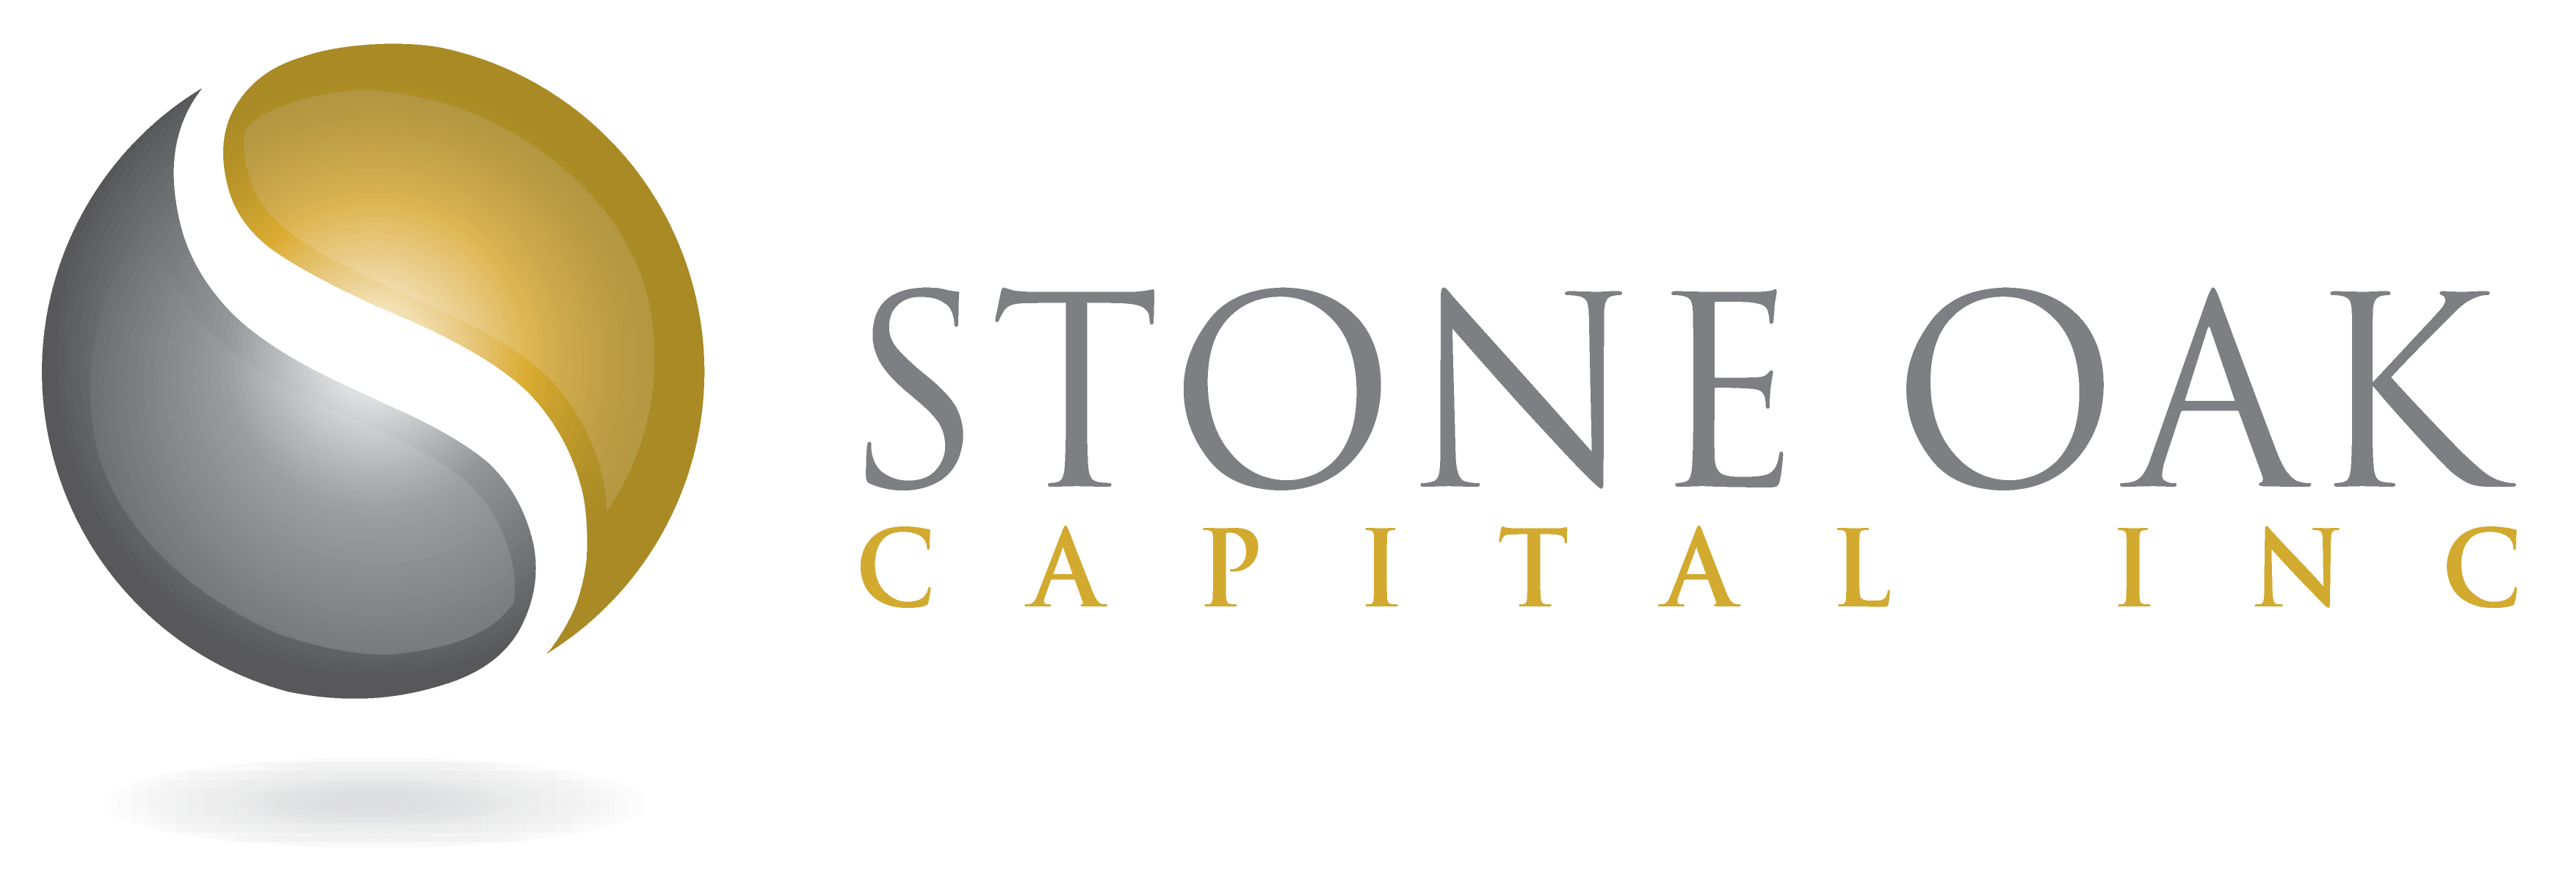 stone oak capital logo